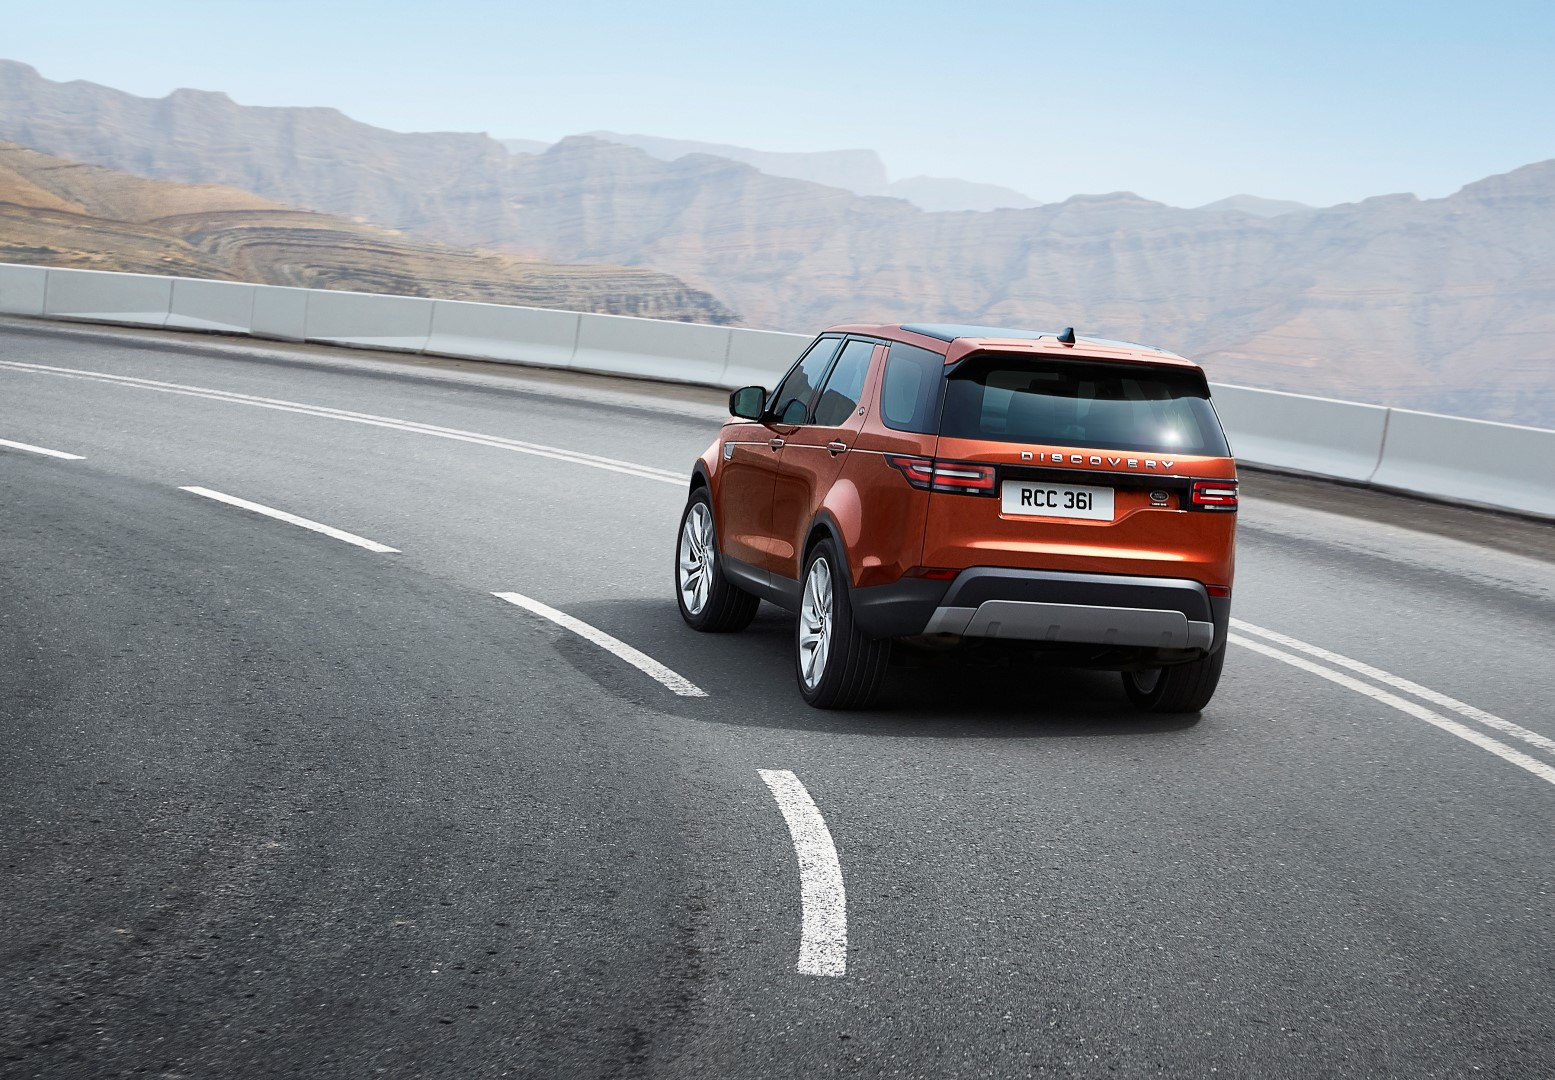 land rover discovery_dynamicroad28091605